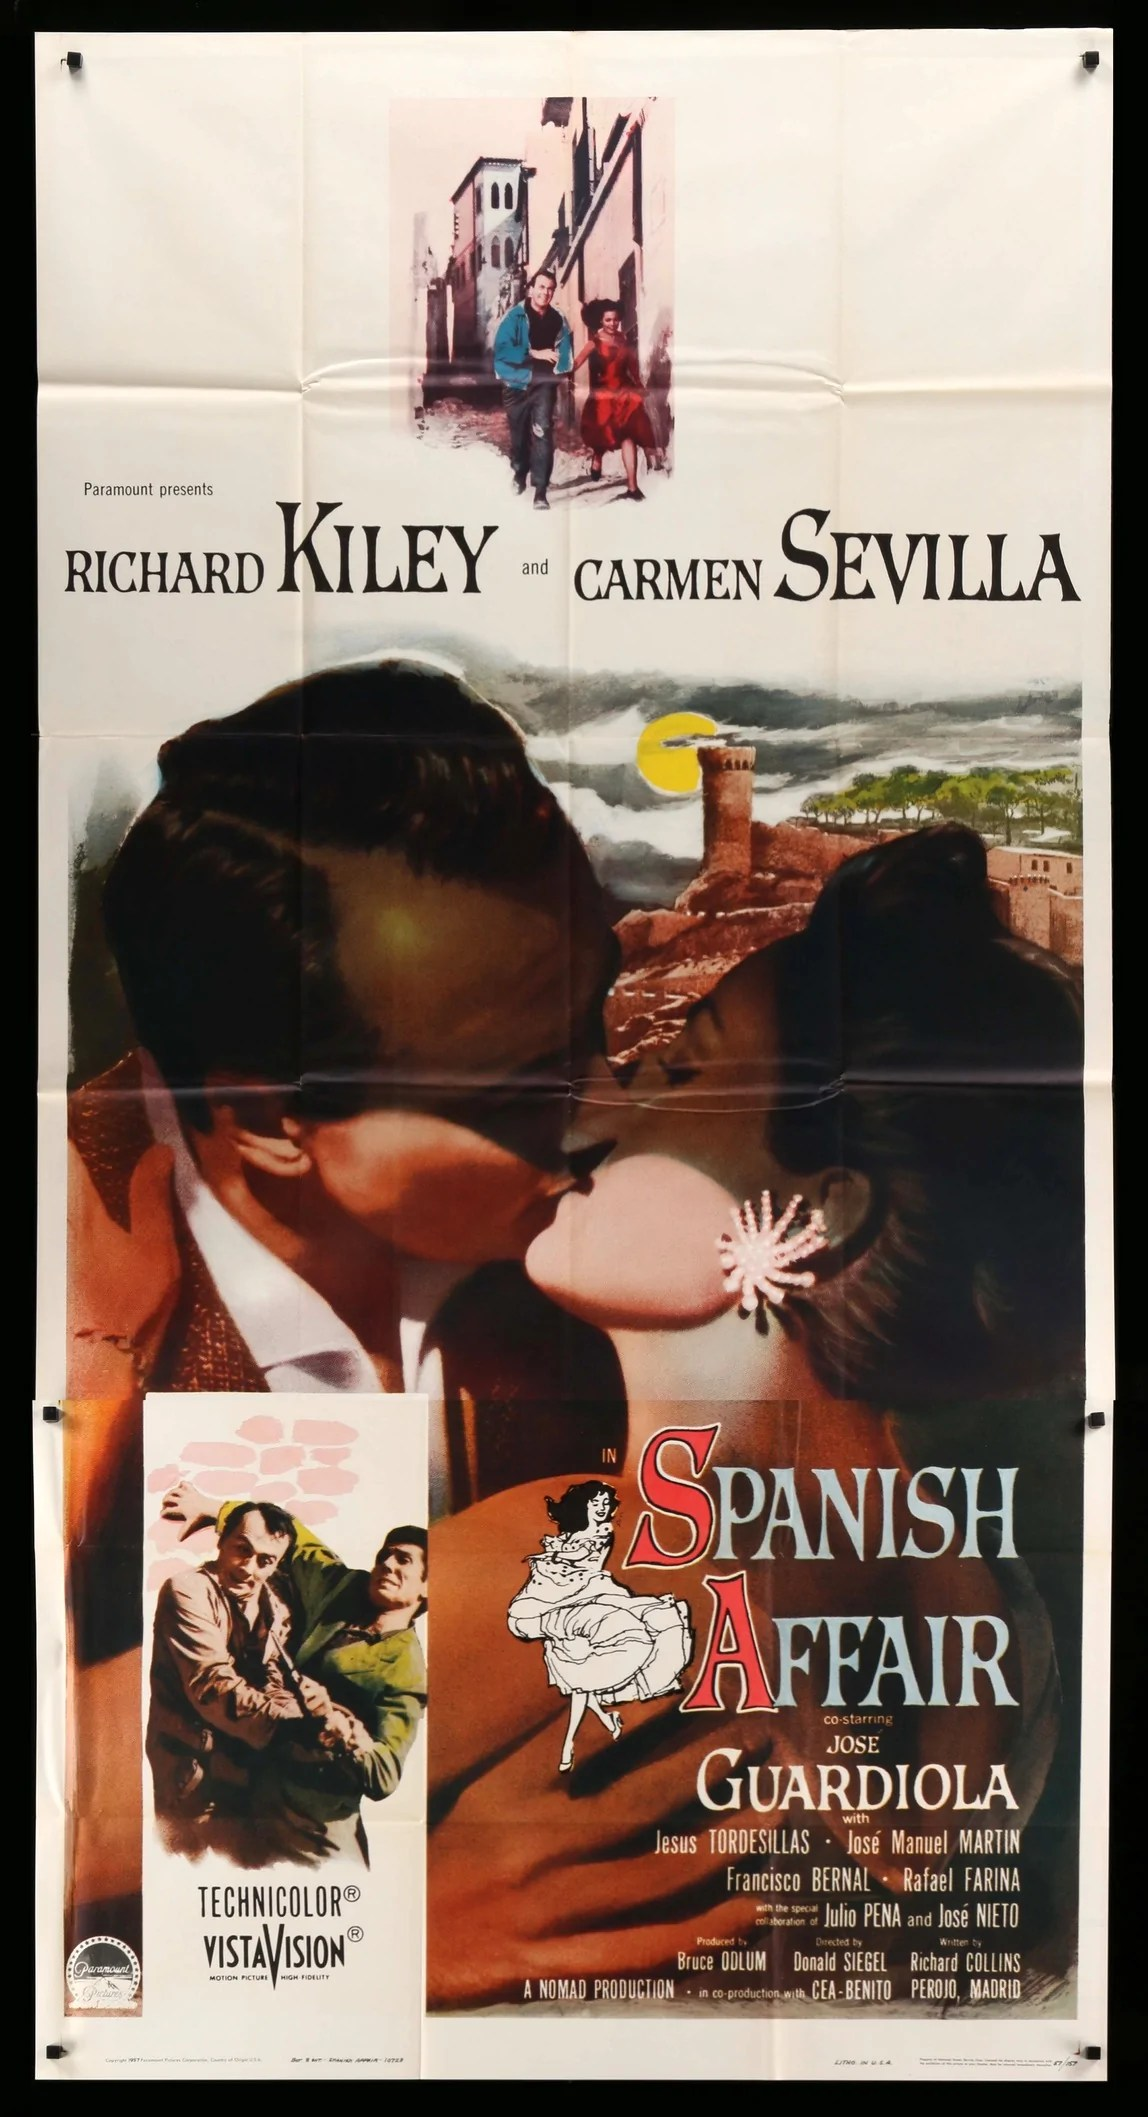 Poster In Spanish Spanish Affair 1957